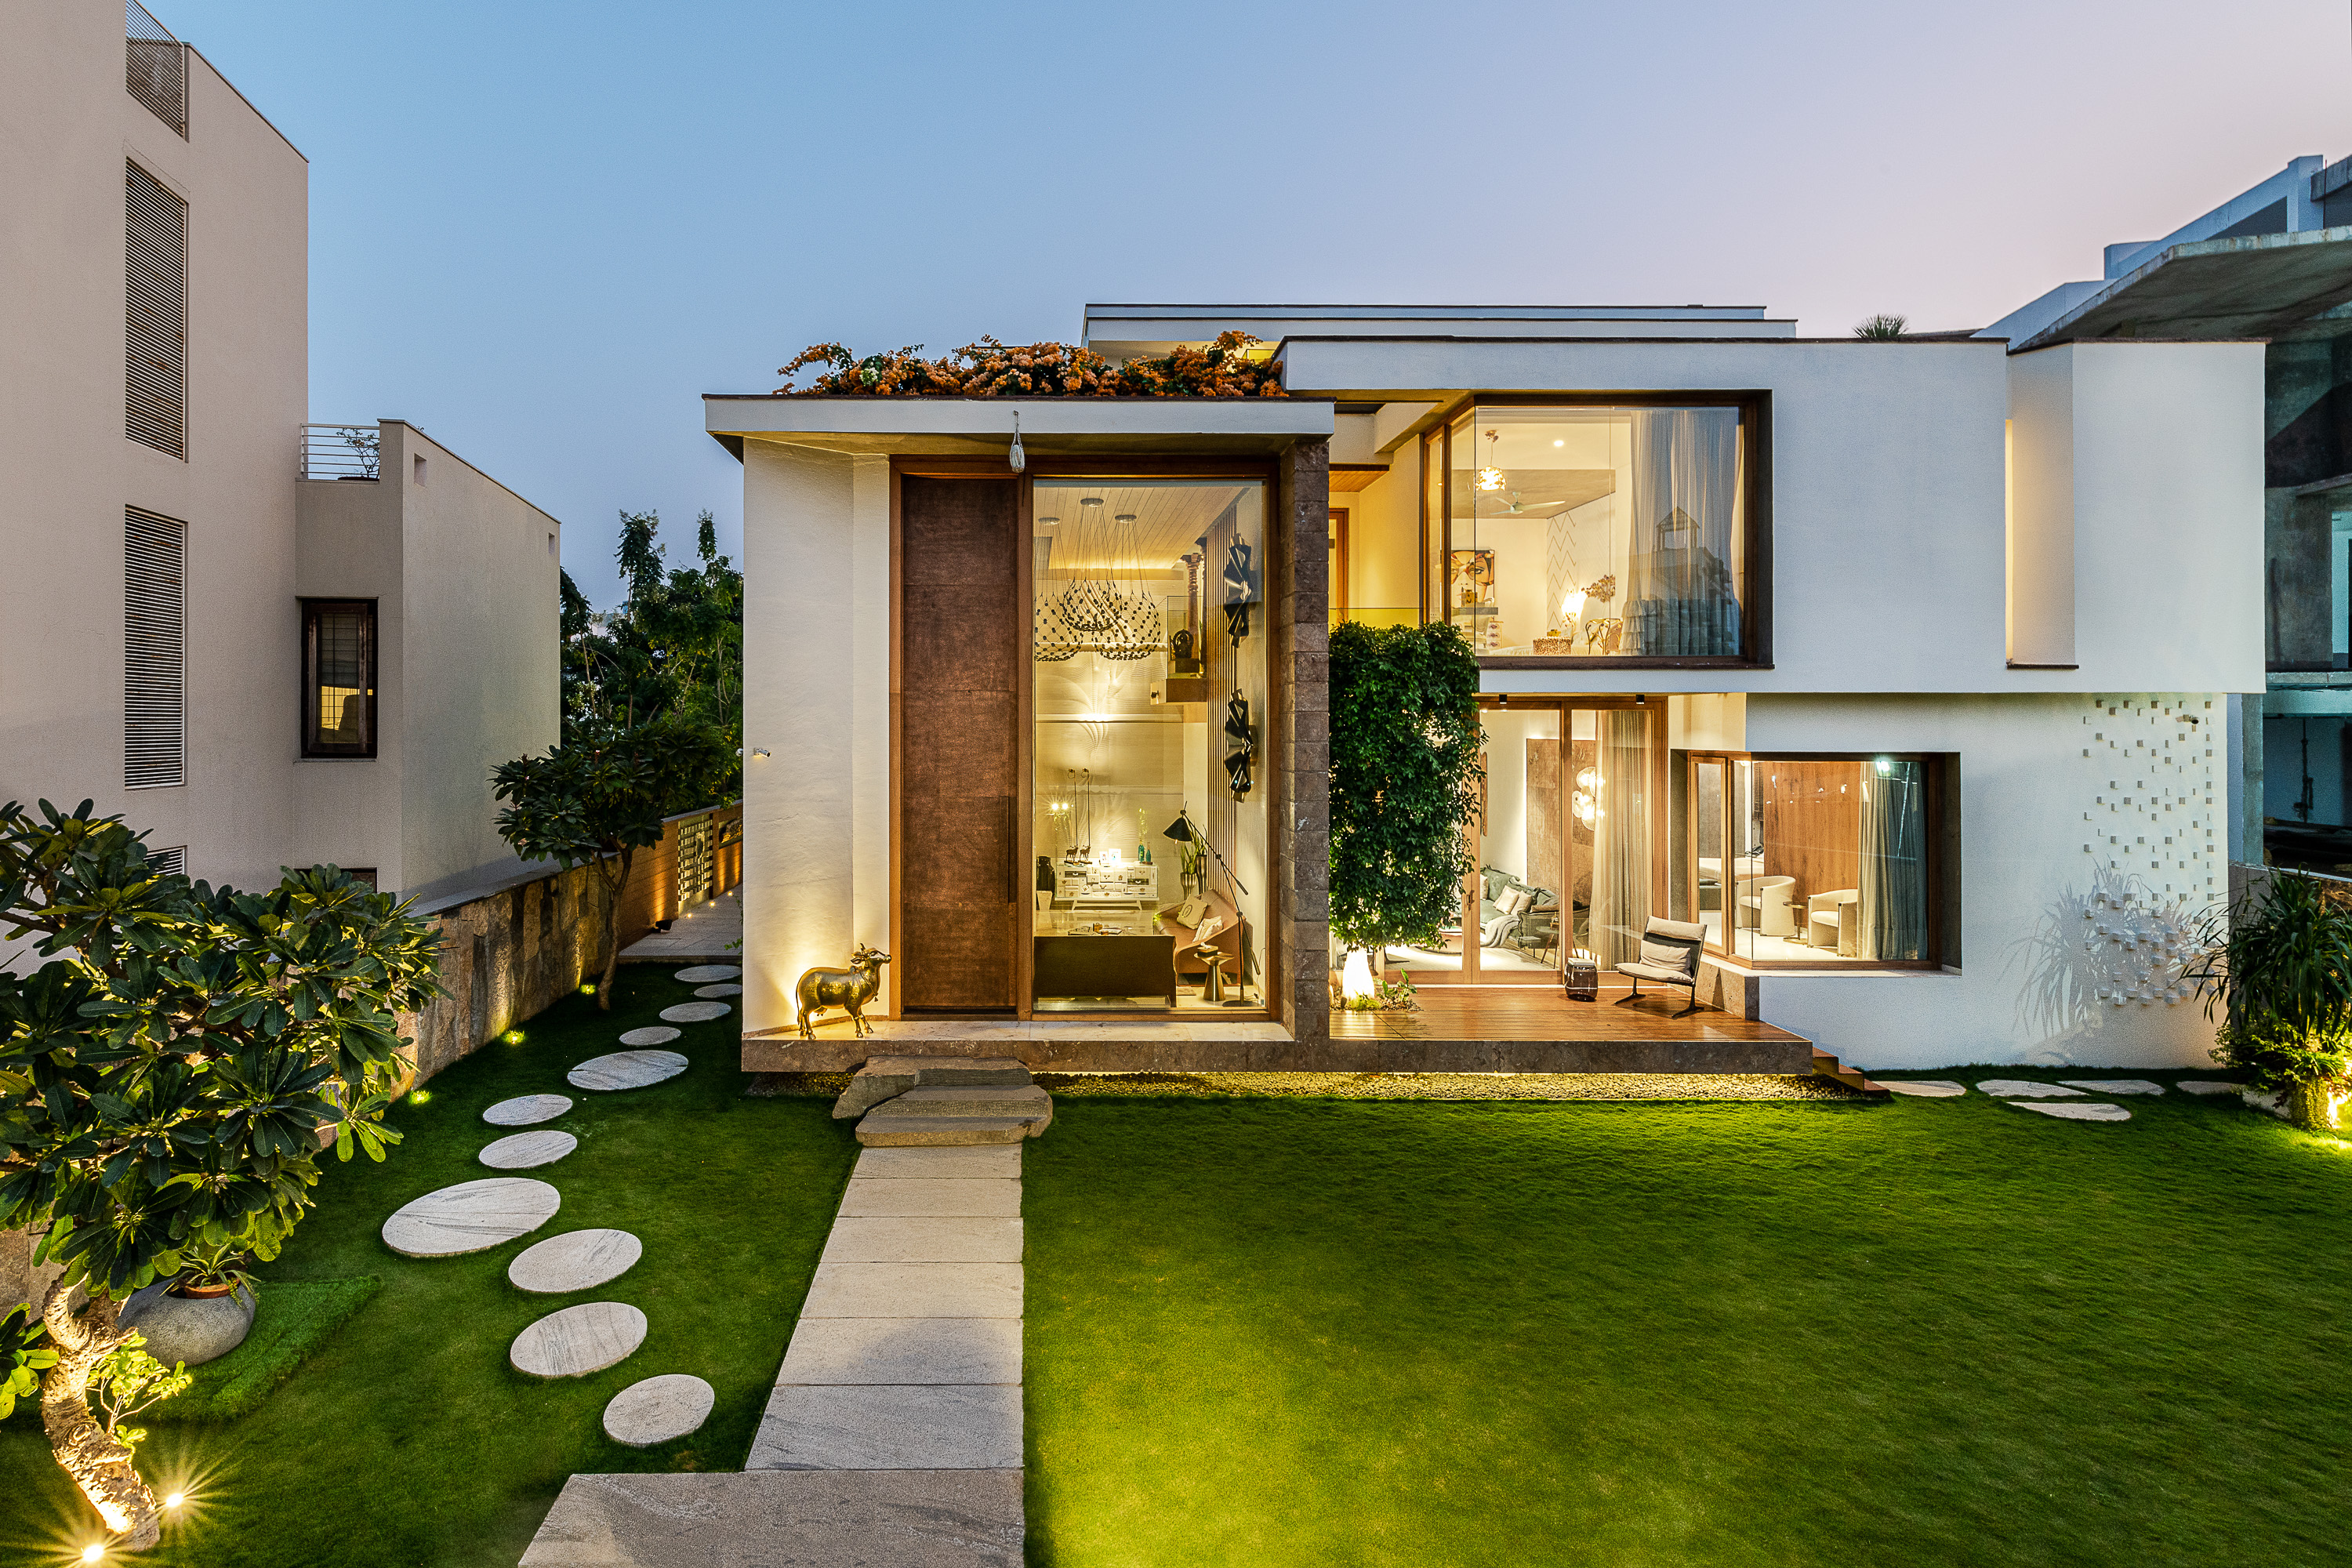 Sustainability Meets Luxury In This Private Residence by NA Architects (11) na architects Sustainability Meets Luxury In This Private Residence by NA Architects Sustainability Meets Luxury In This Private Residence by NA Architects 11